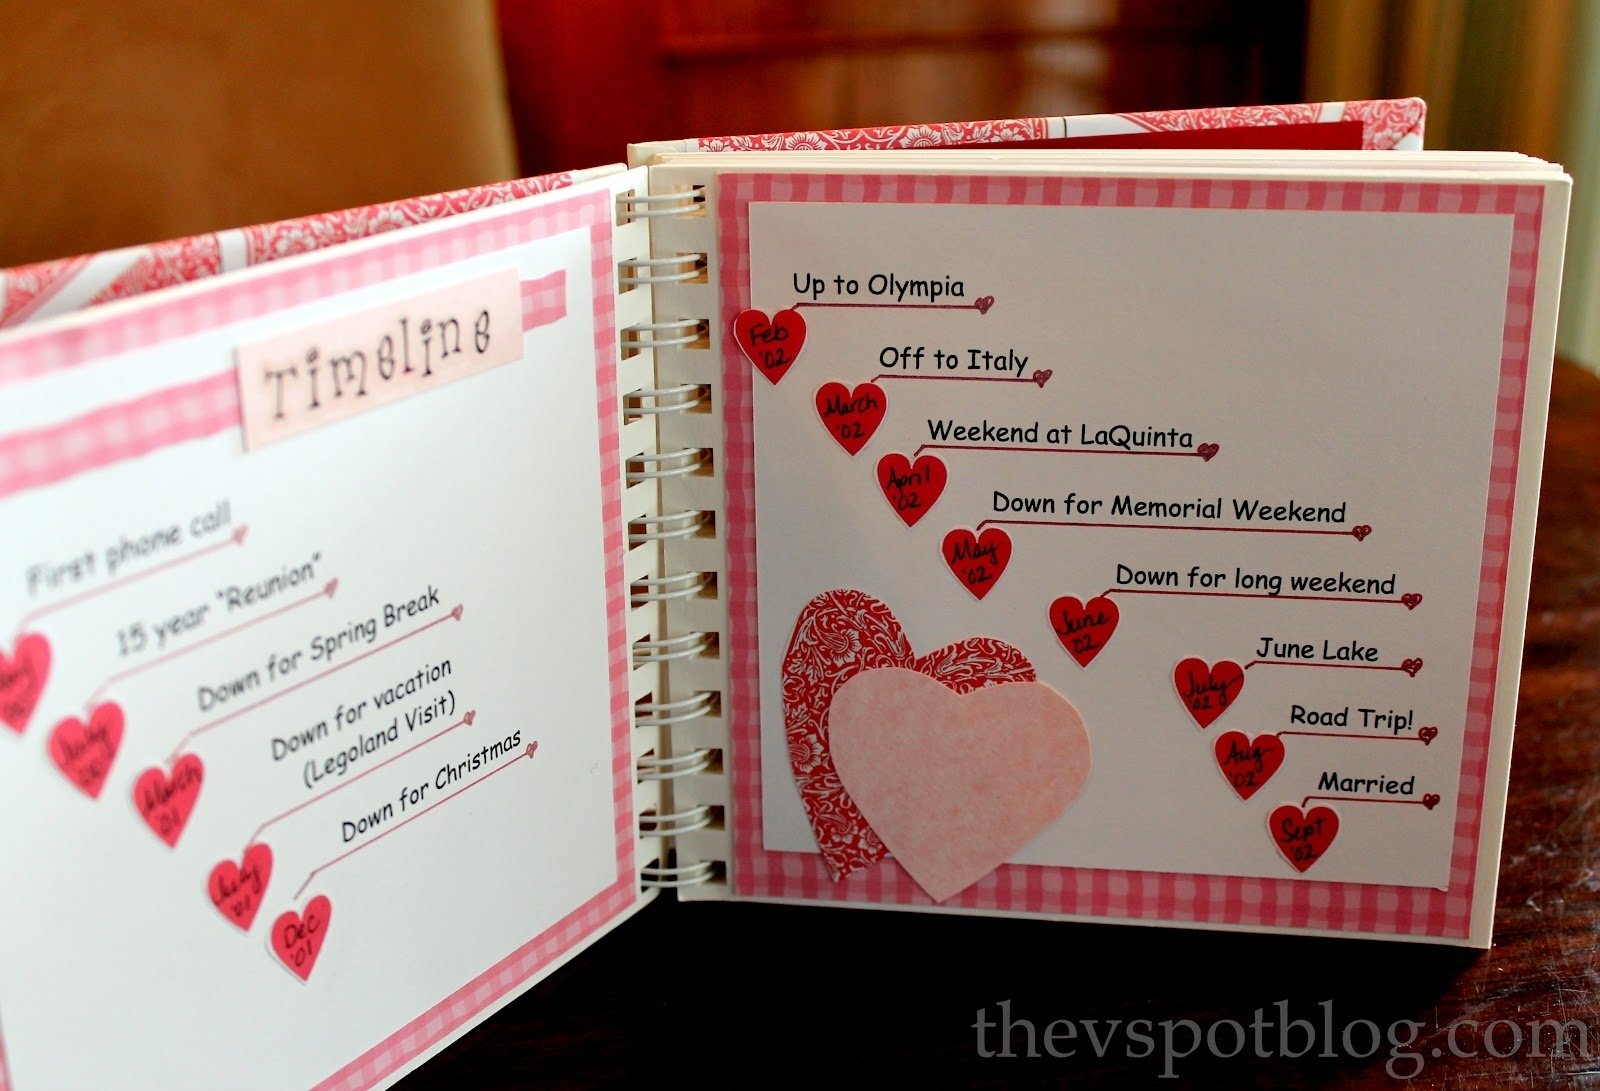 10 Awesome Creative Ideas For Valentines Day For Him valentine day new creative ideas boyfriend husband him home art 51